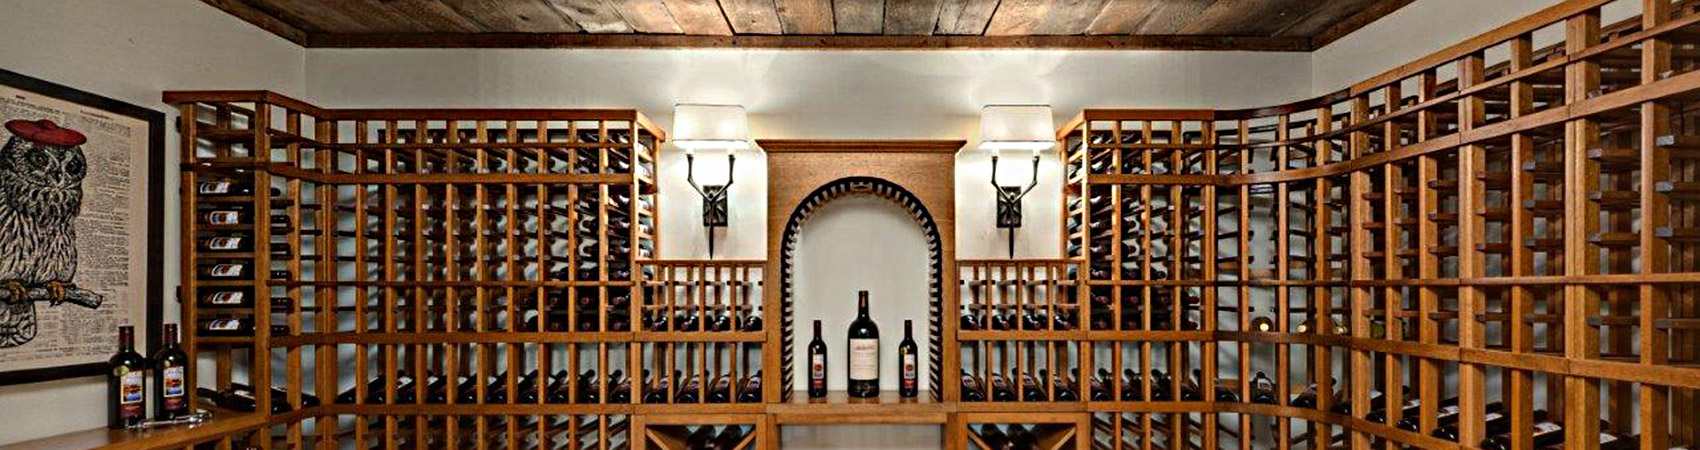 full-wine-room1